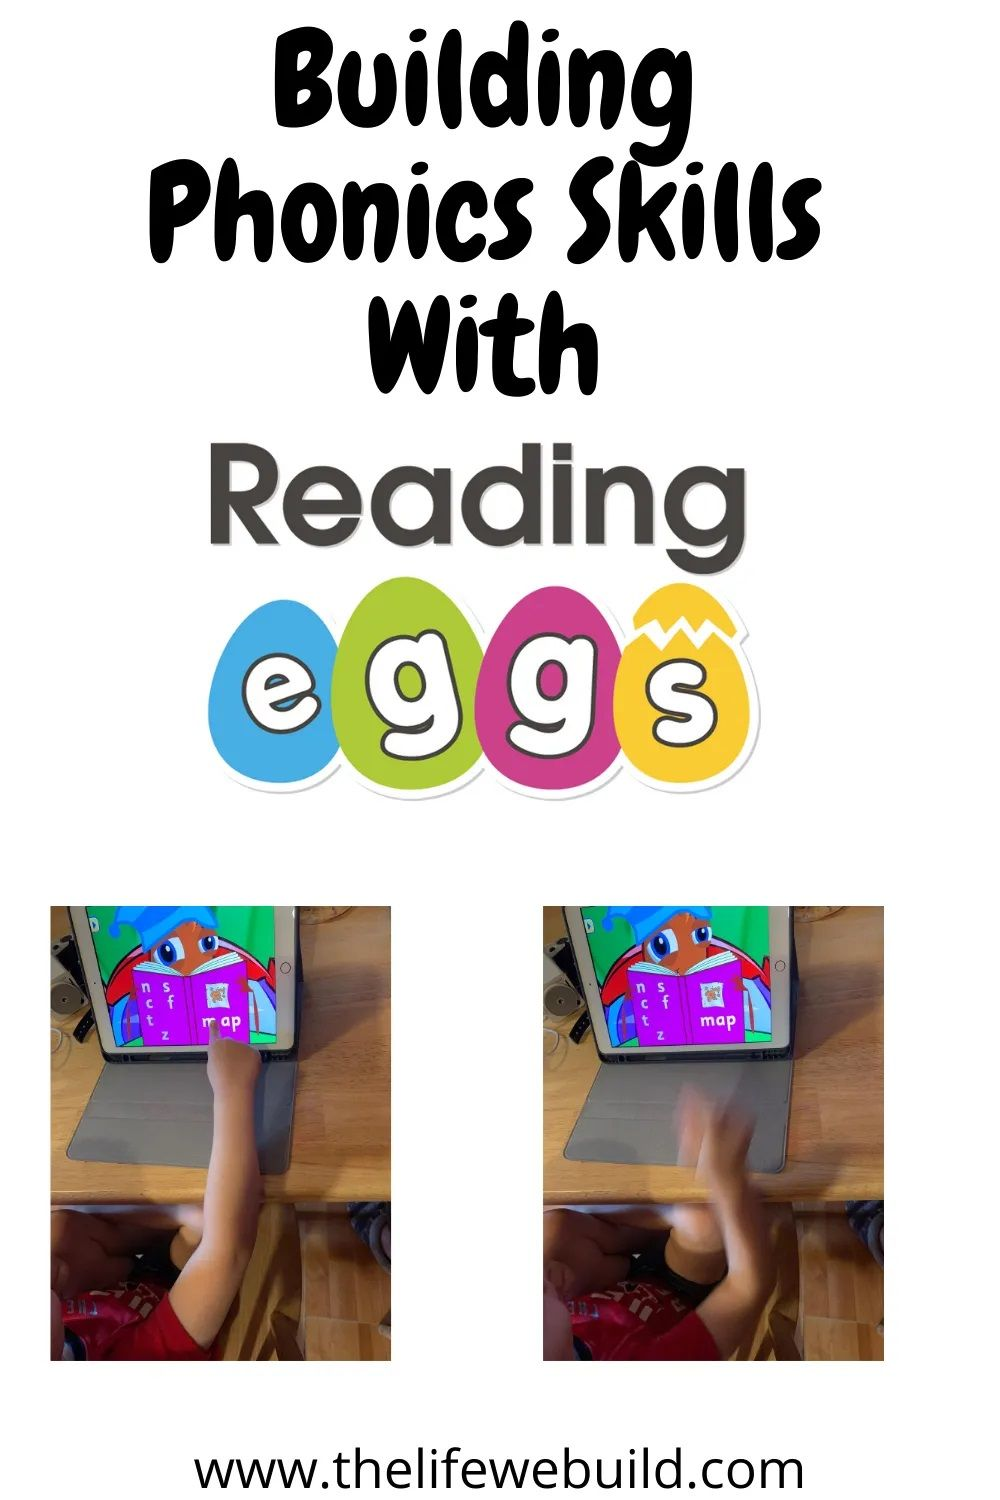 Building Phonics Skills With Reading Eggs Phonics Reading Eggs Online Reading Programs Is reading eggs free for teachers